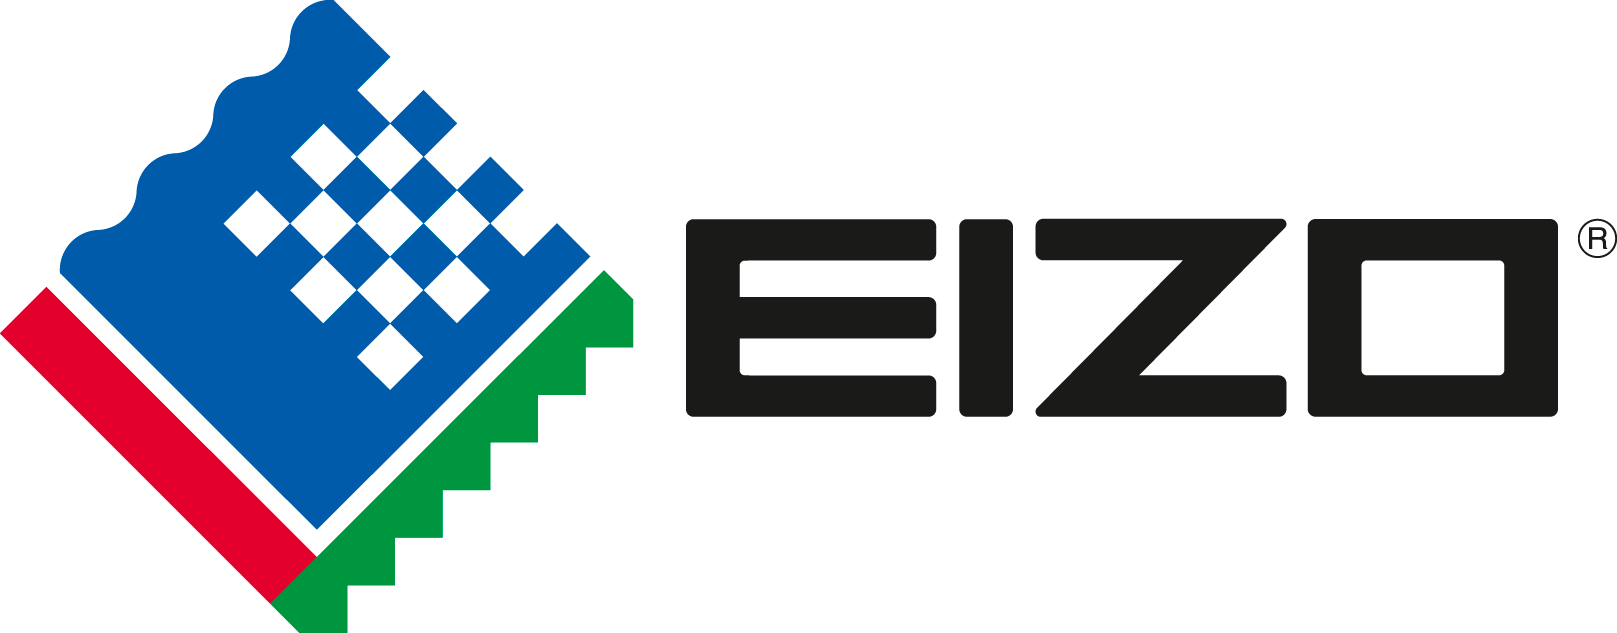 EIZO logo CMYK Full Color